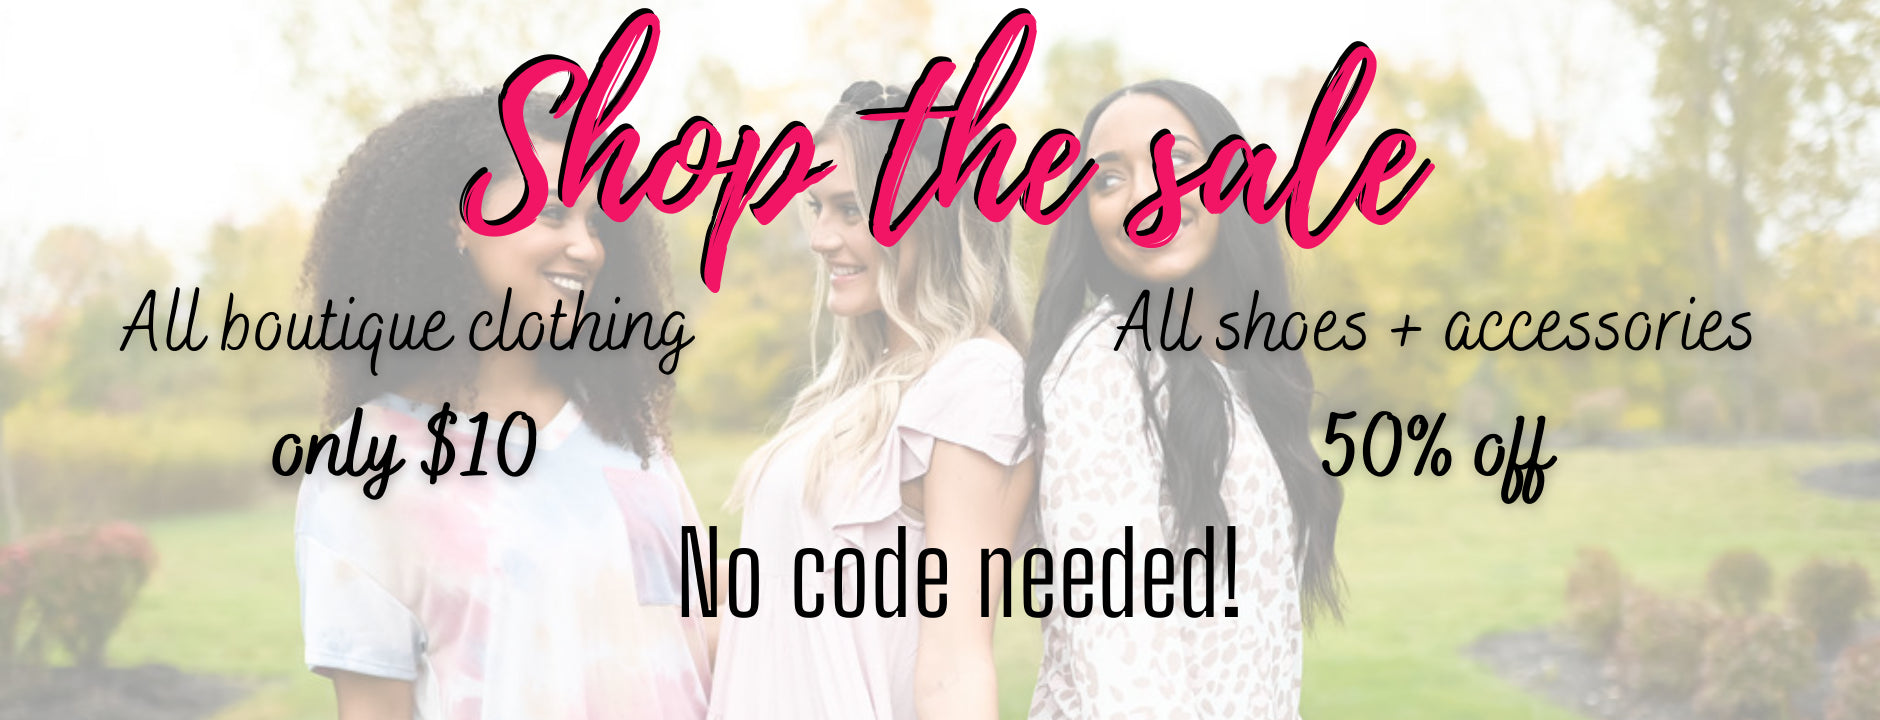 RaeLynns: 2020 Prom Dresses   Boutique Clothing